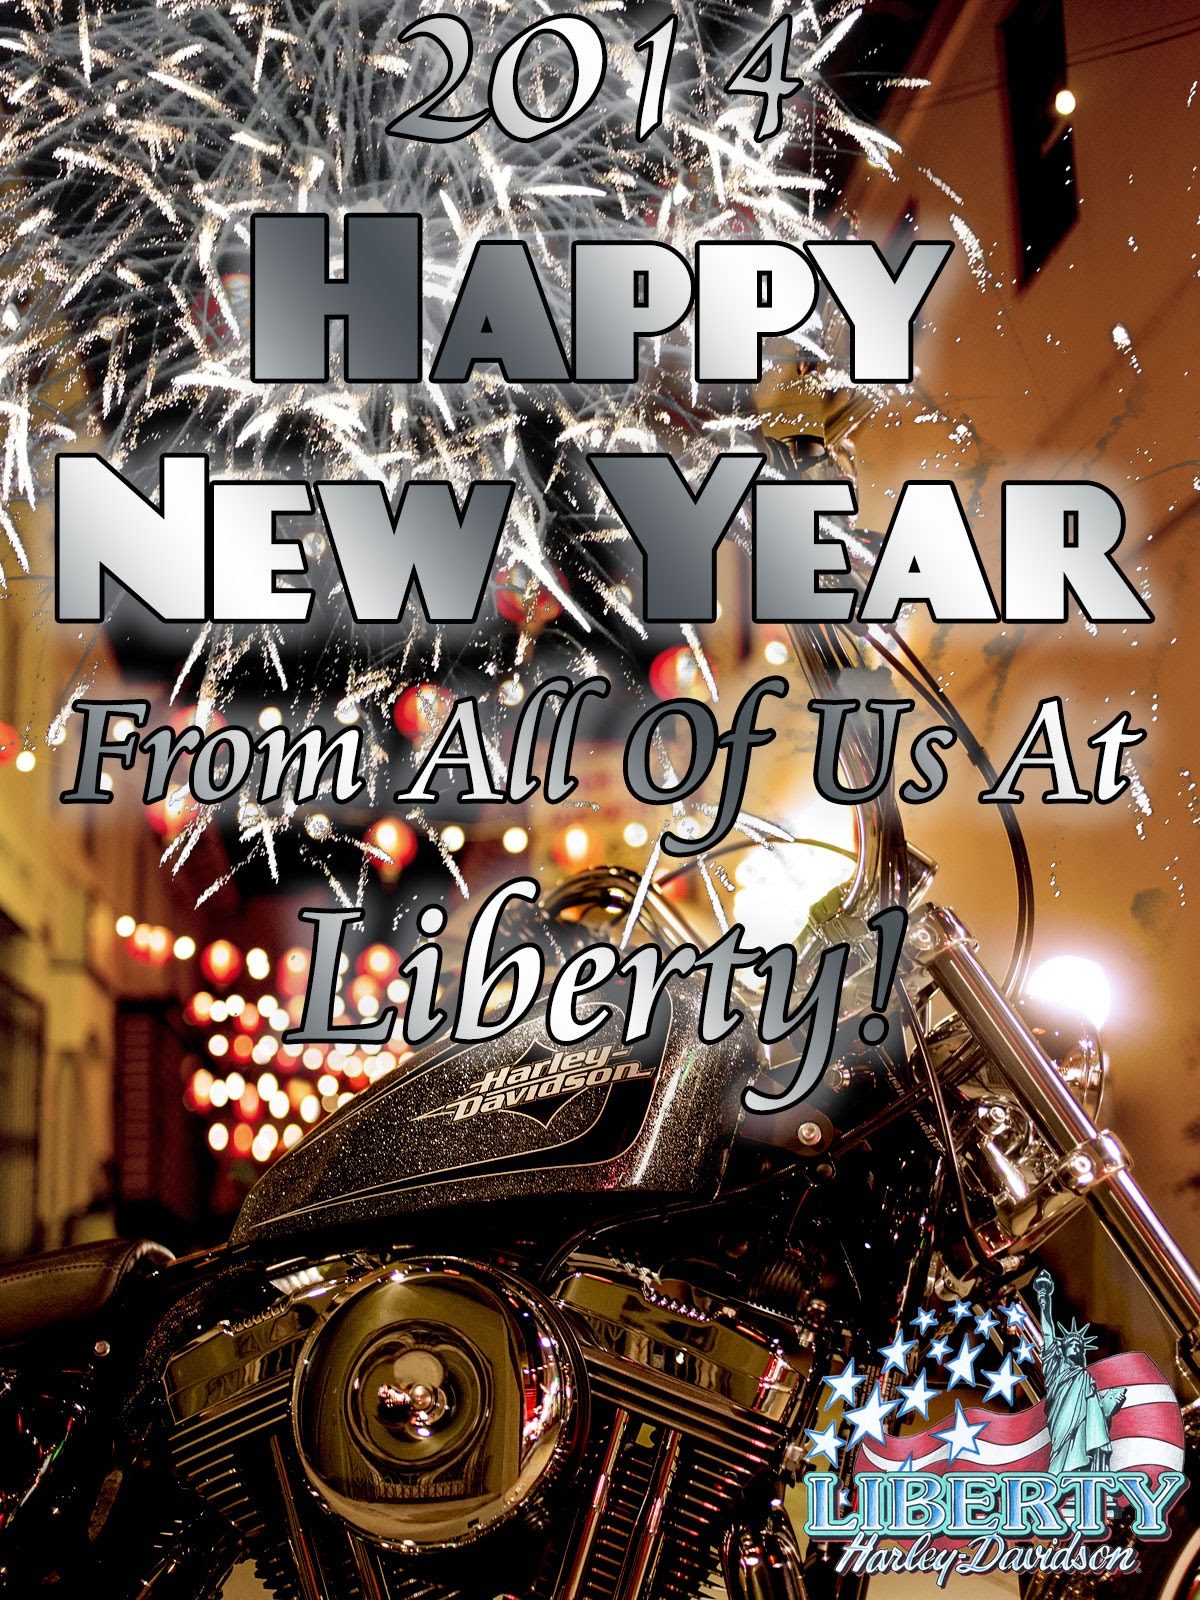 happy 2014 the 111th year of harley davidson i love harley